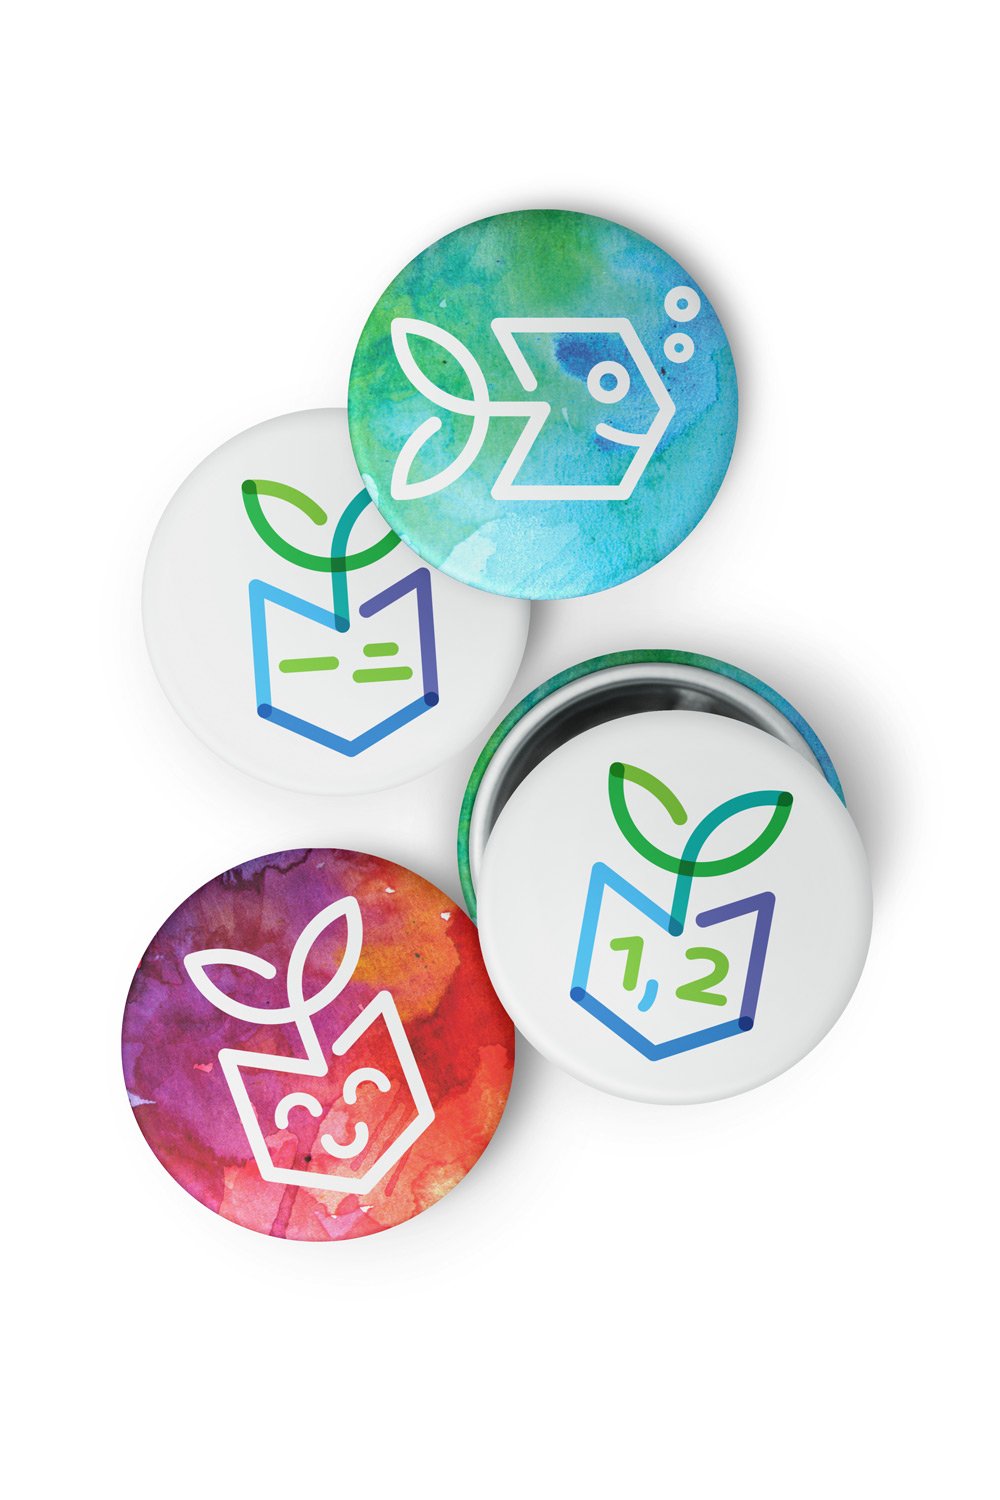 Yi Er badges